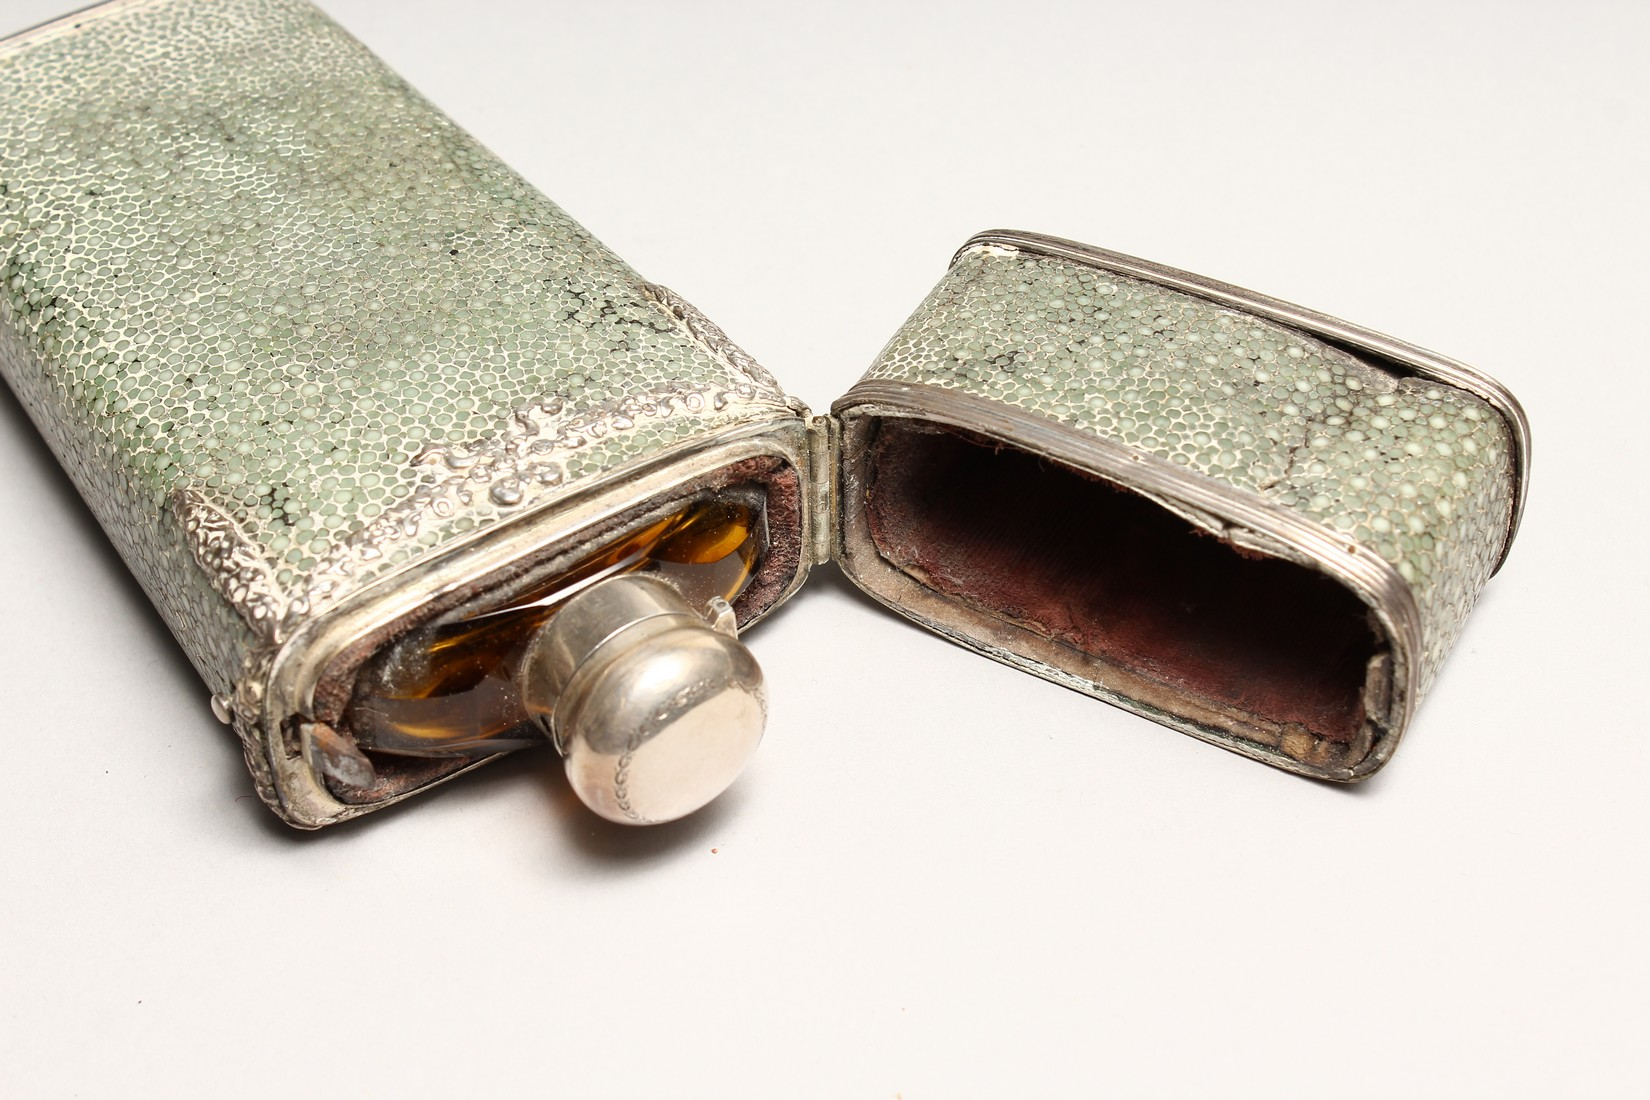 A GEORGIAN WHISKY FLASK in a shagreen case, with silver garlands 6.5ins long (some damage). - Image 8 of 8